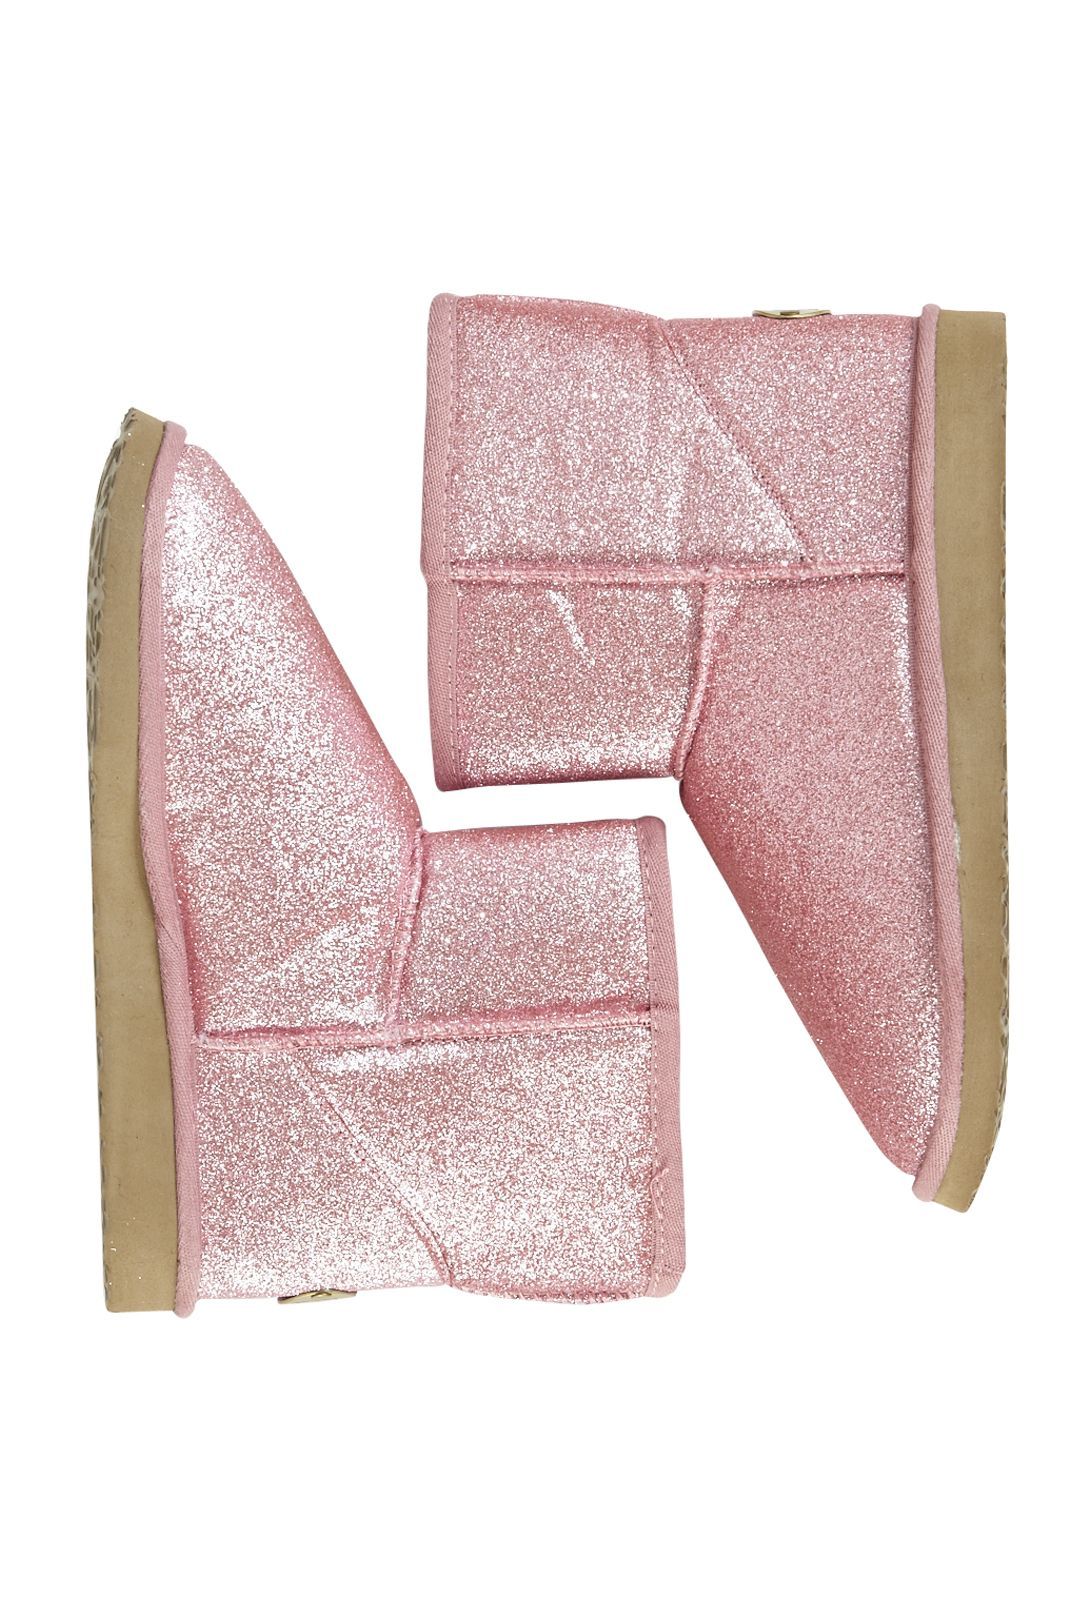 031b7e457a I definitely need a pair of these Pink Glitter Homeboot from Peter  Alexander Sleepwear